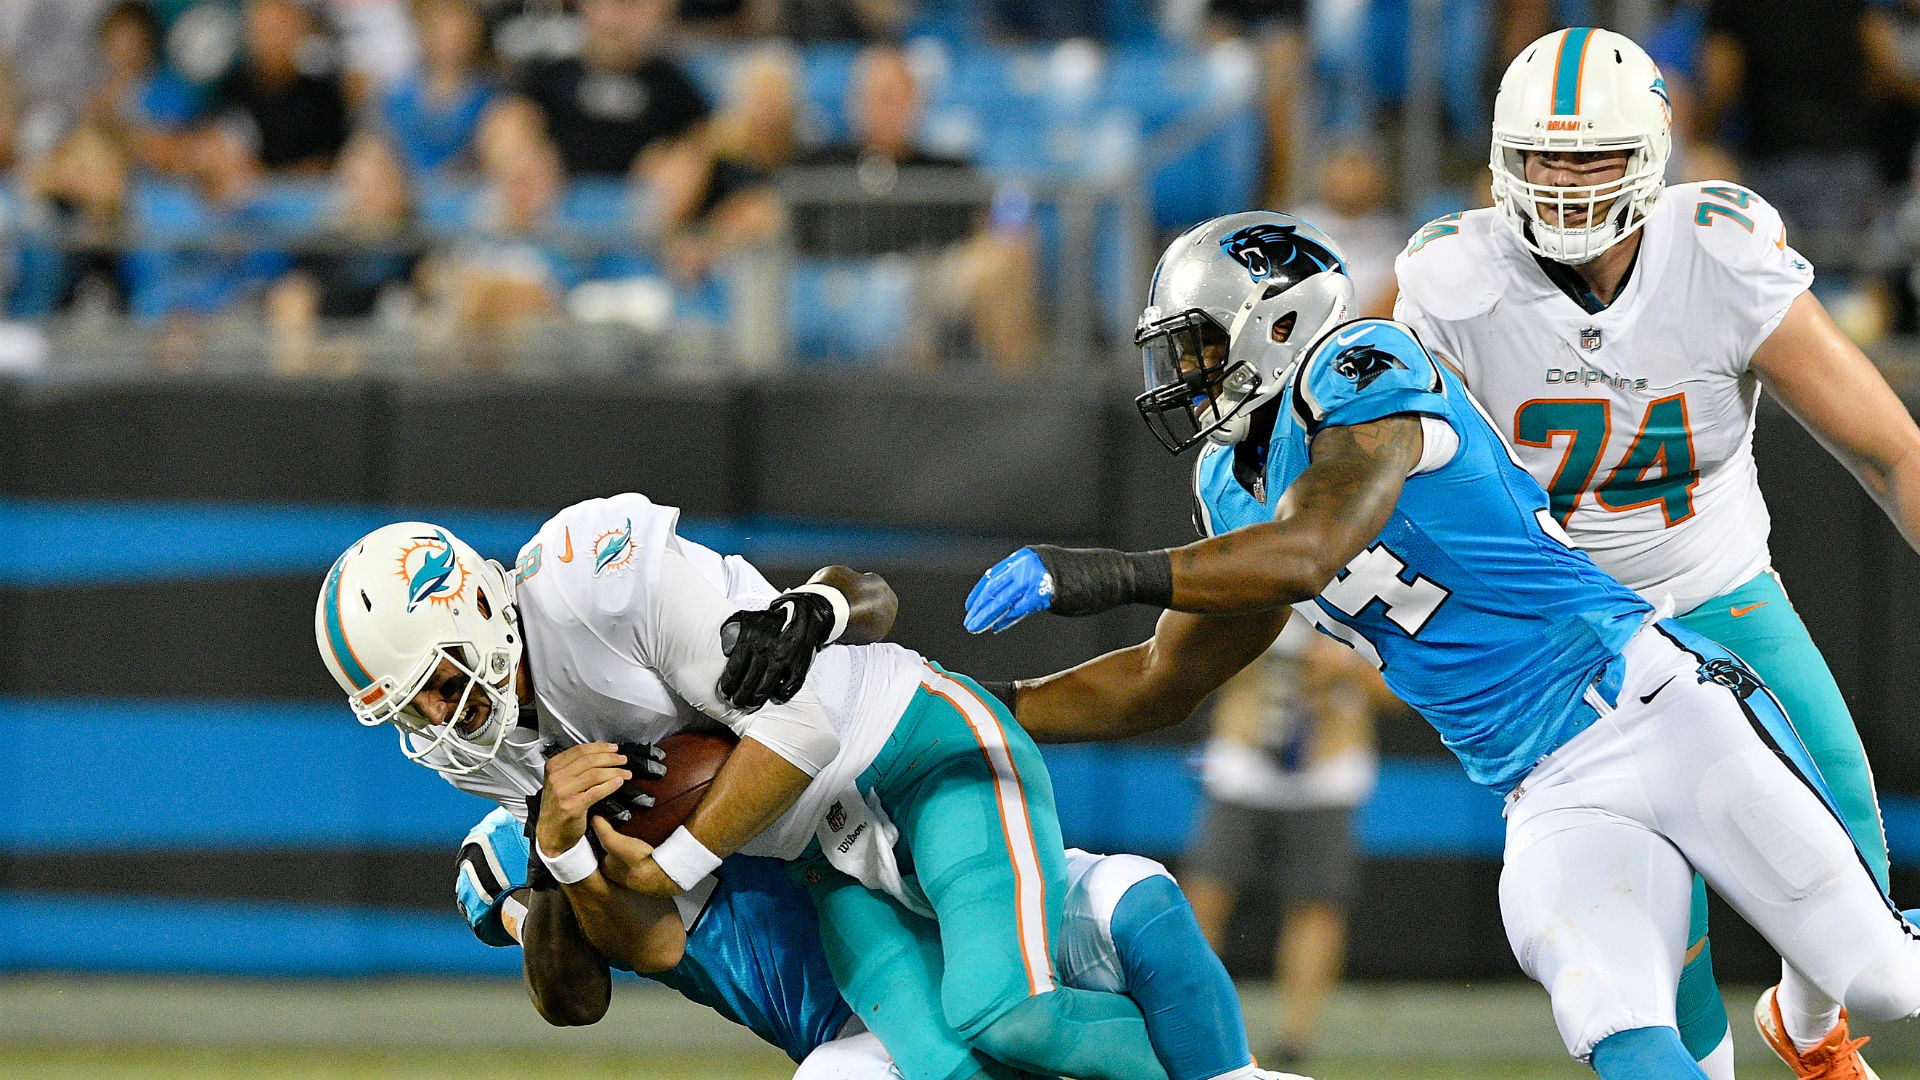 e3a8124d7 Obada makes Panthers roster after growing up homeless | Sporting News